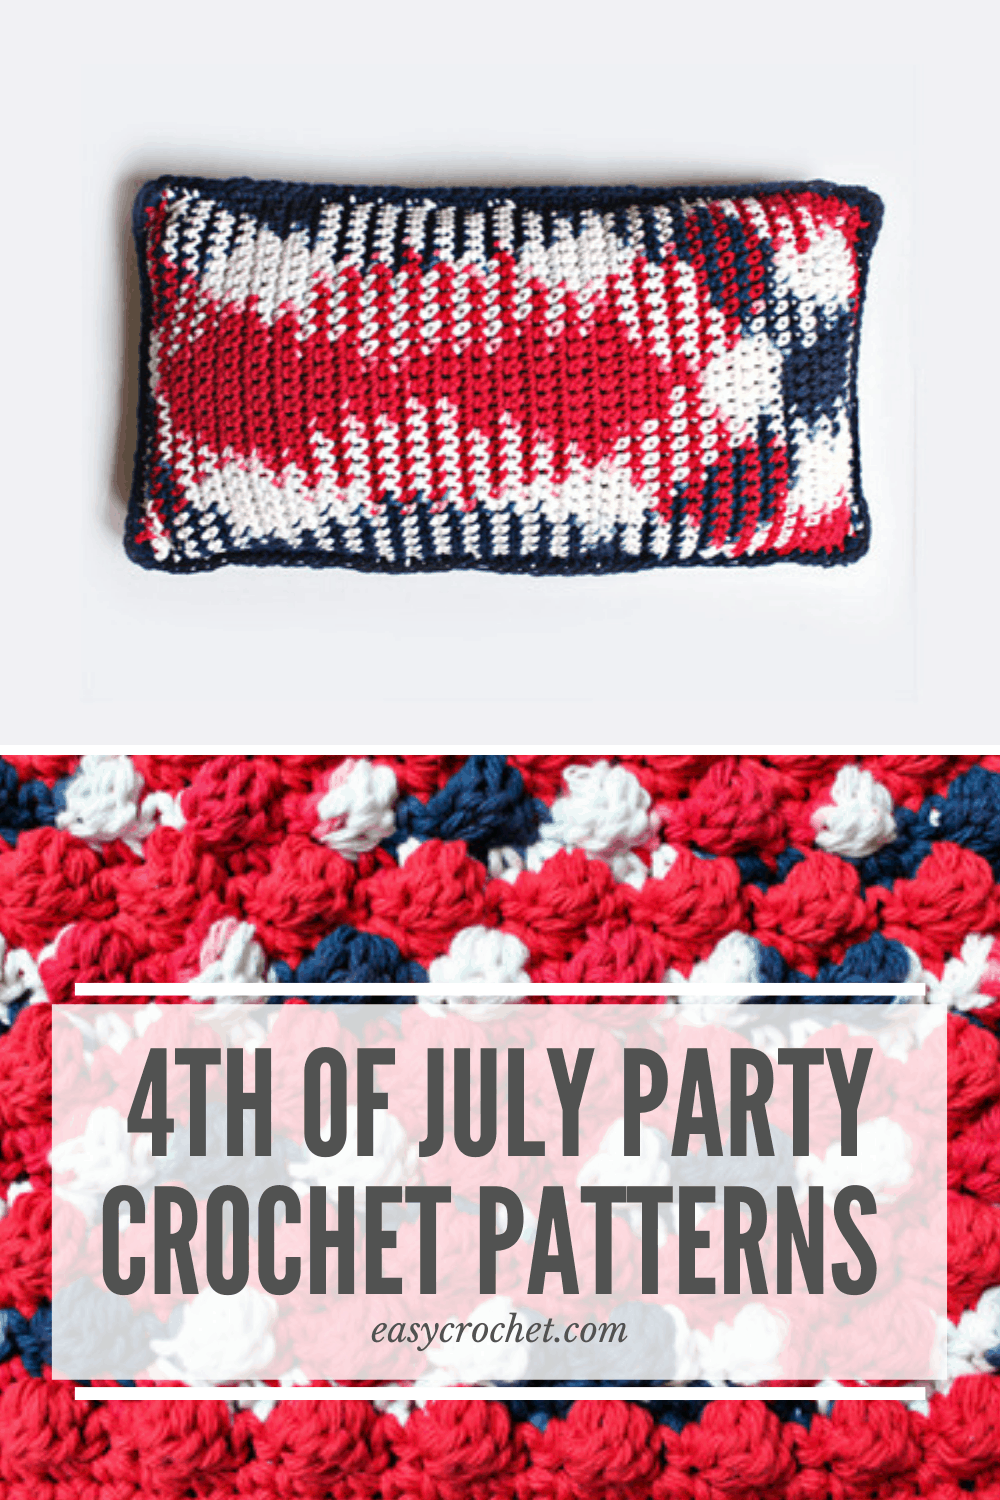 4th of July Party Crochet Patterns